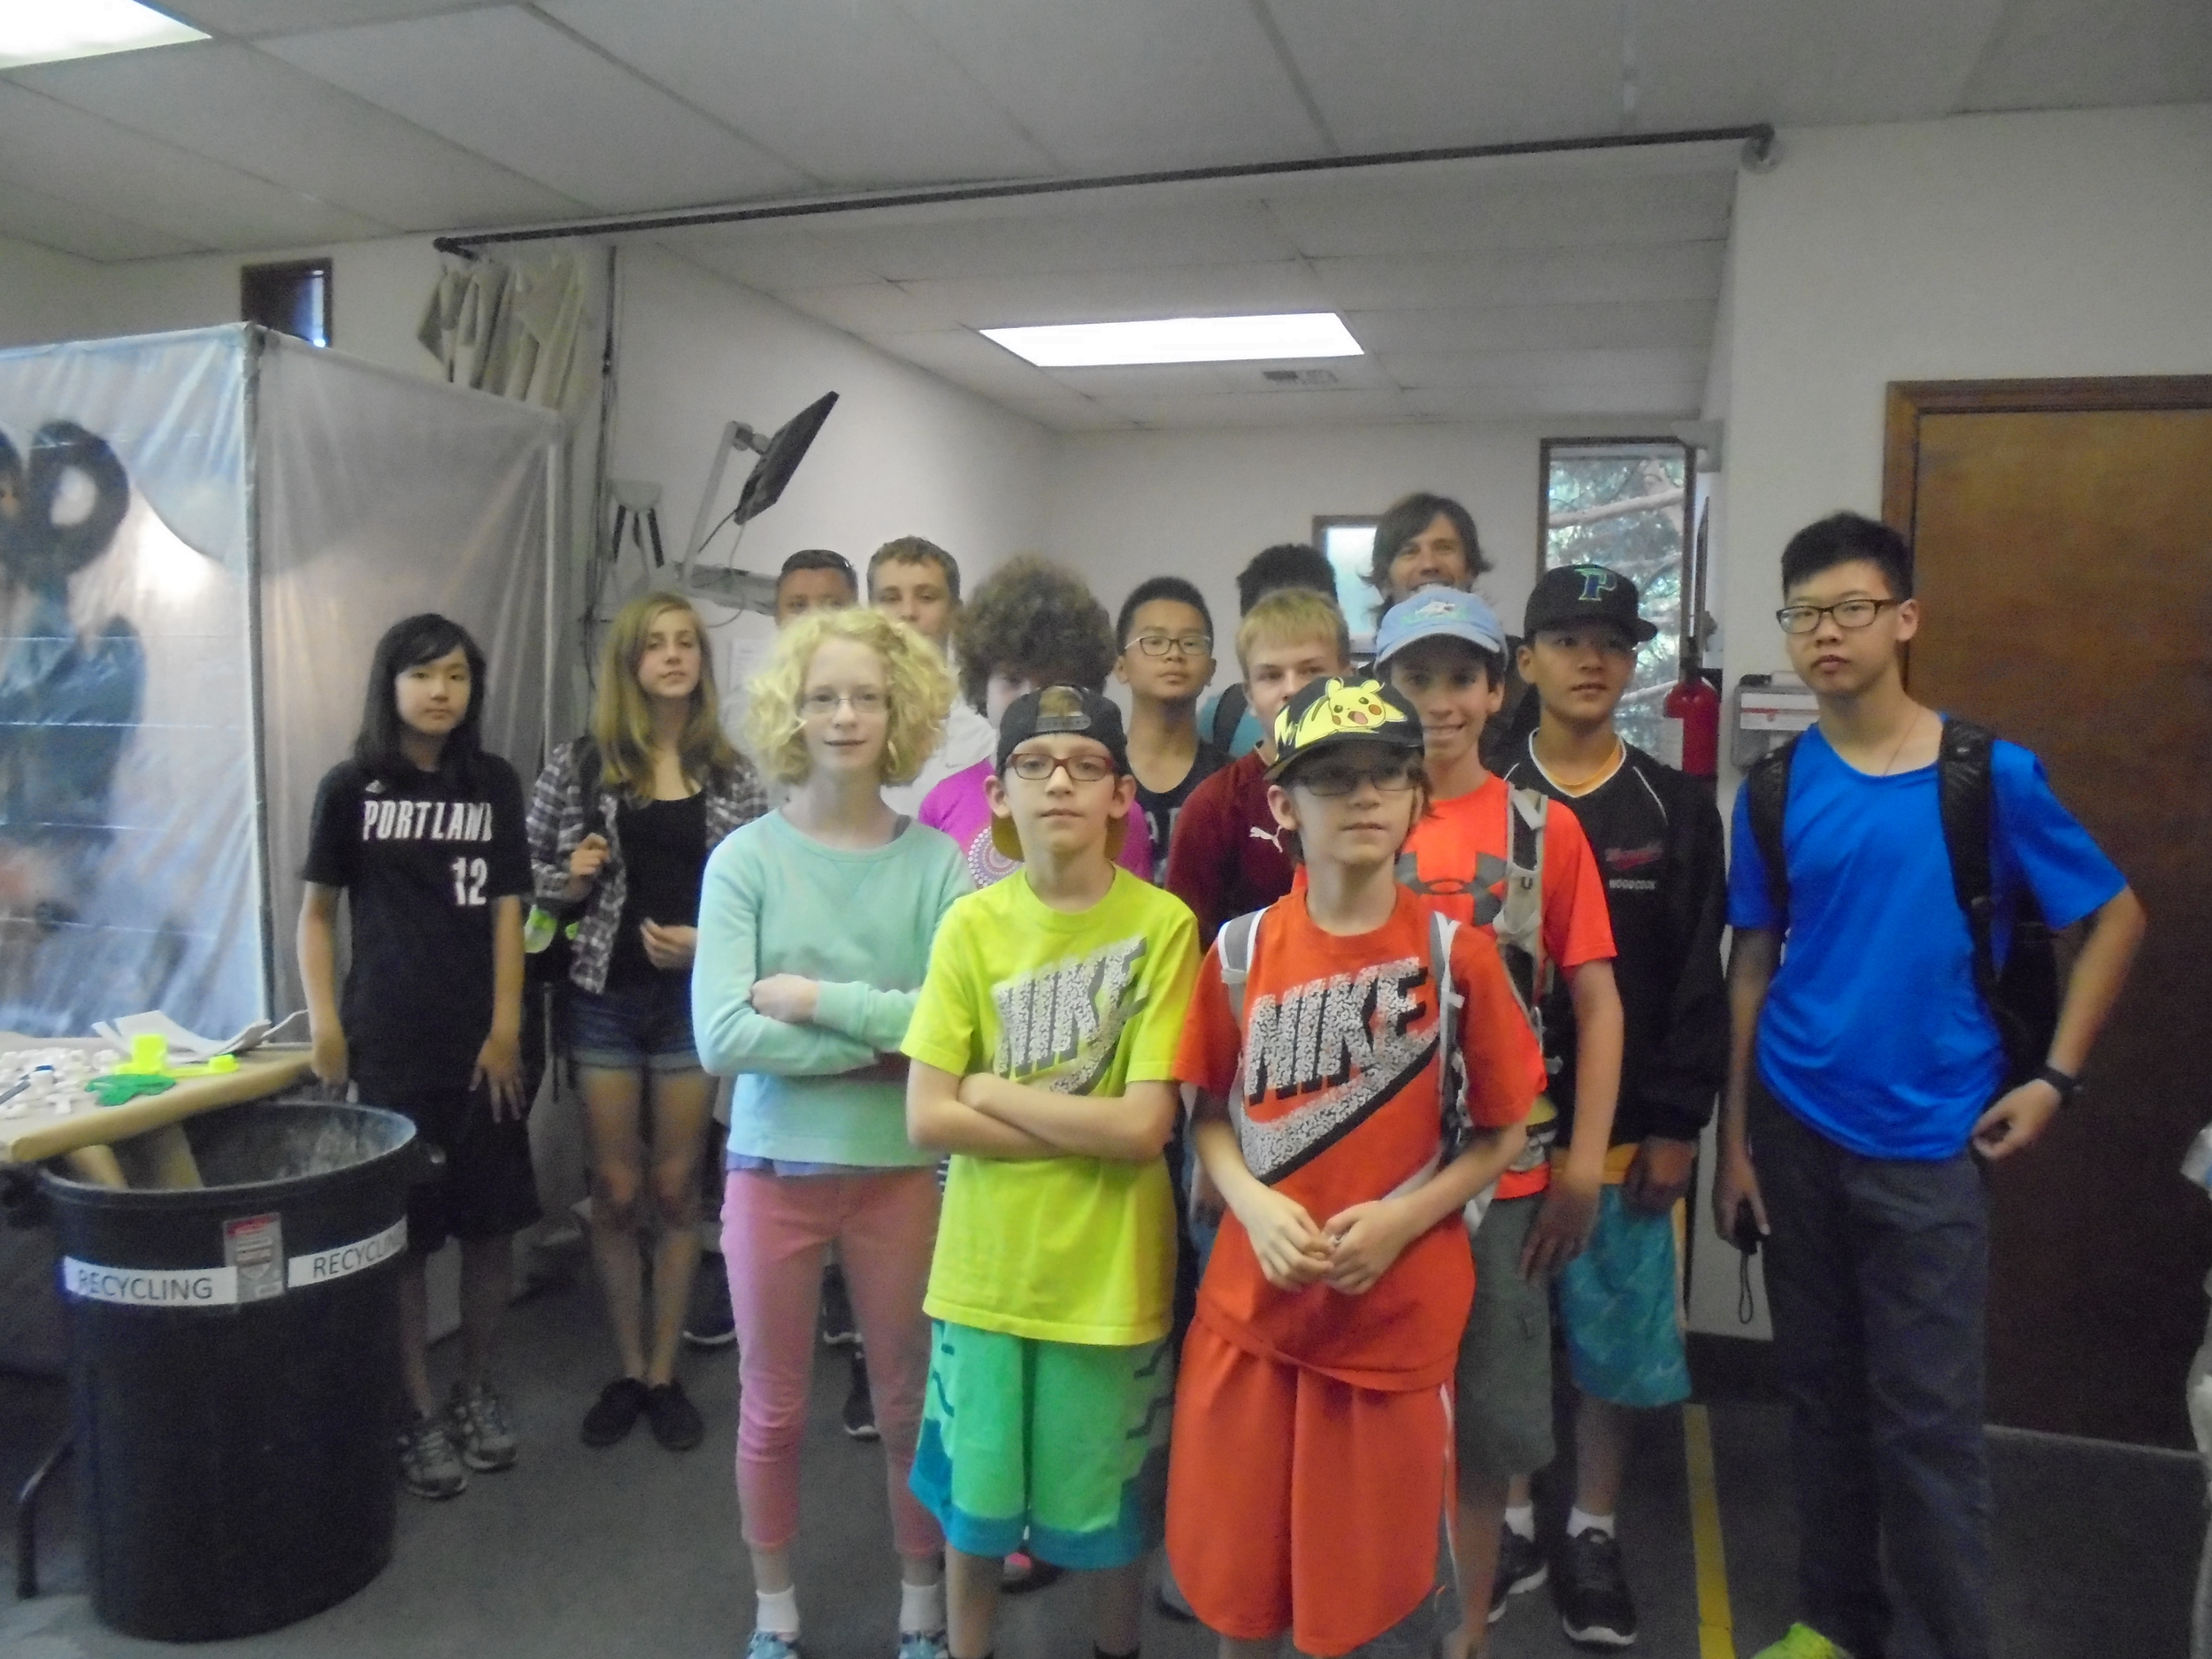 Middle School students from Catlin Gabel 3D printing camp enjoy RapidMade tour